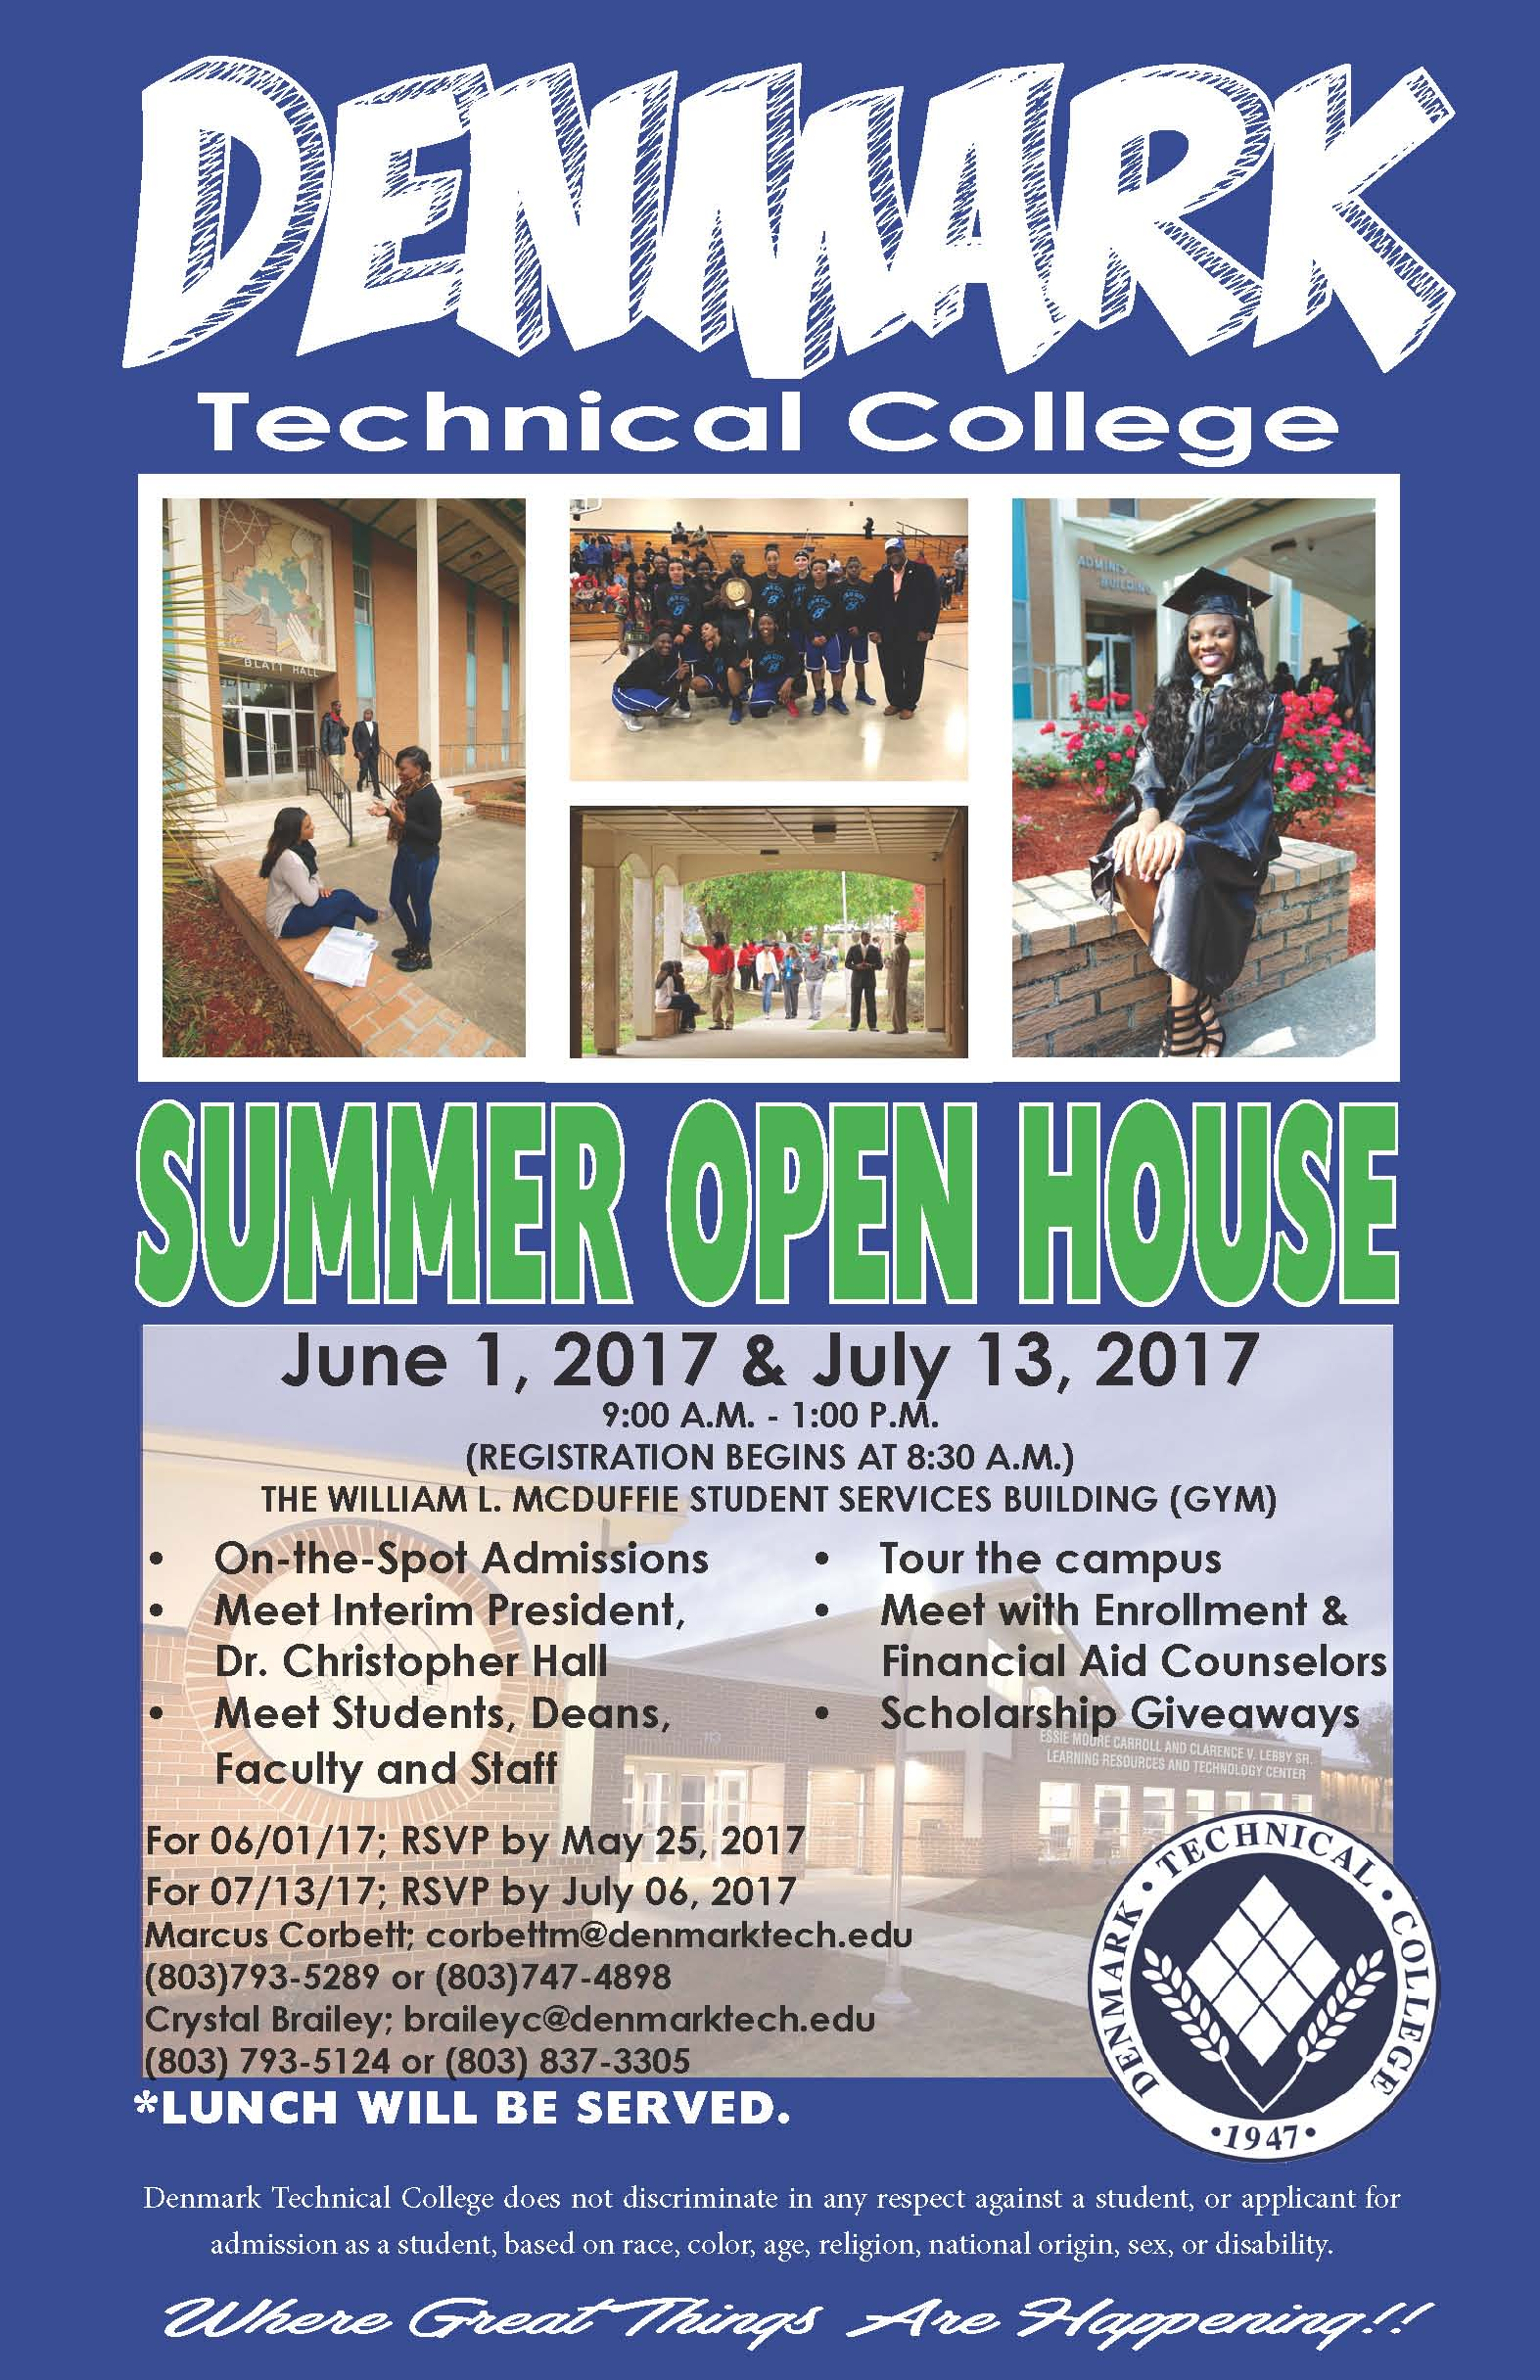 Denmark Technical College Summer 2017 Open House Sessions